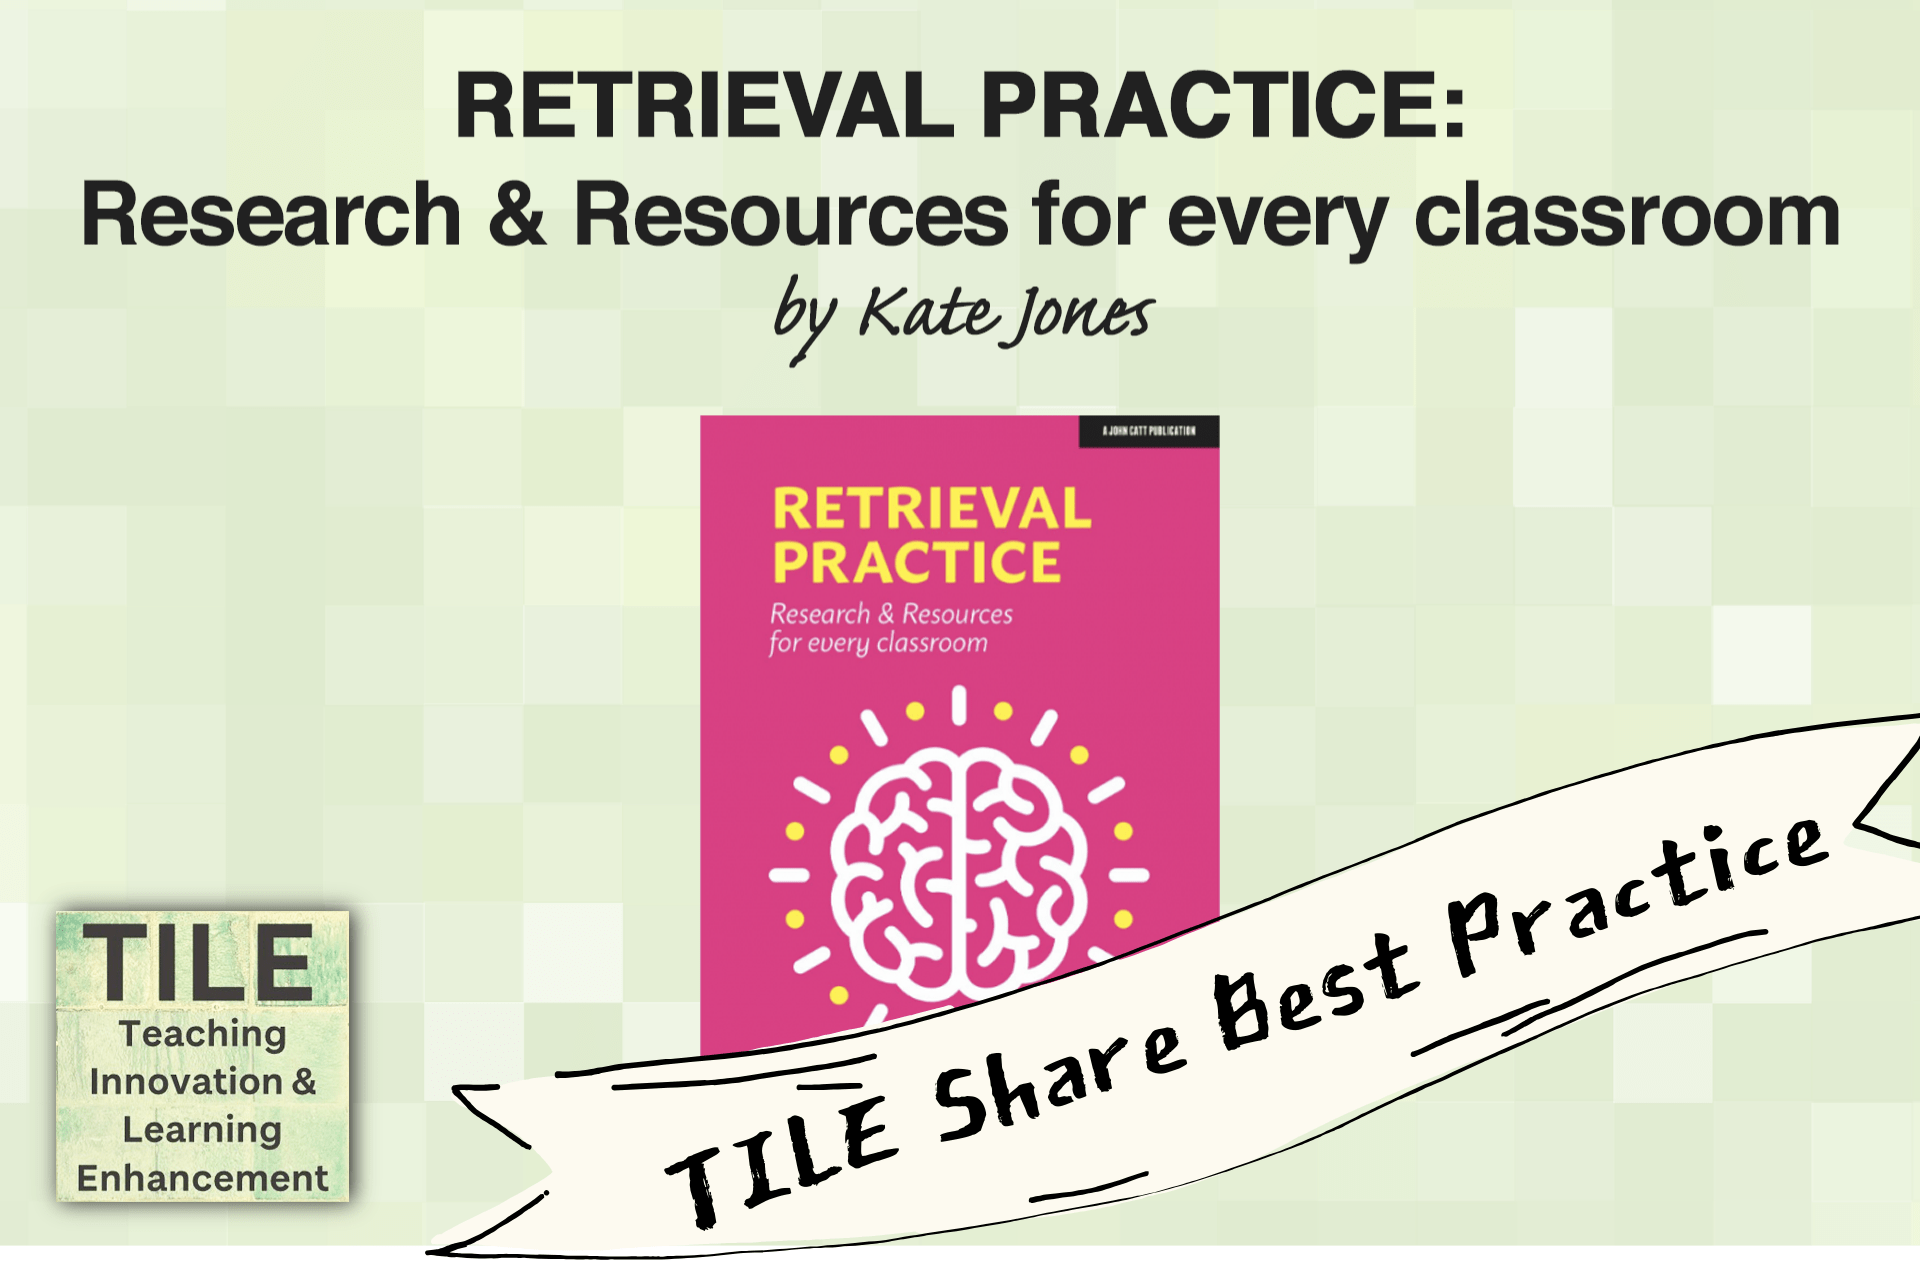 TILE Share Best Practice: Retrieval Practice: Research and Resources for every classroom by Kate Jones